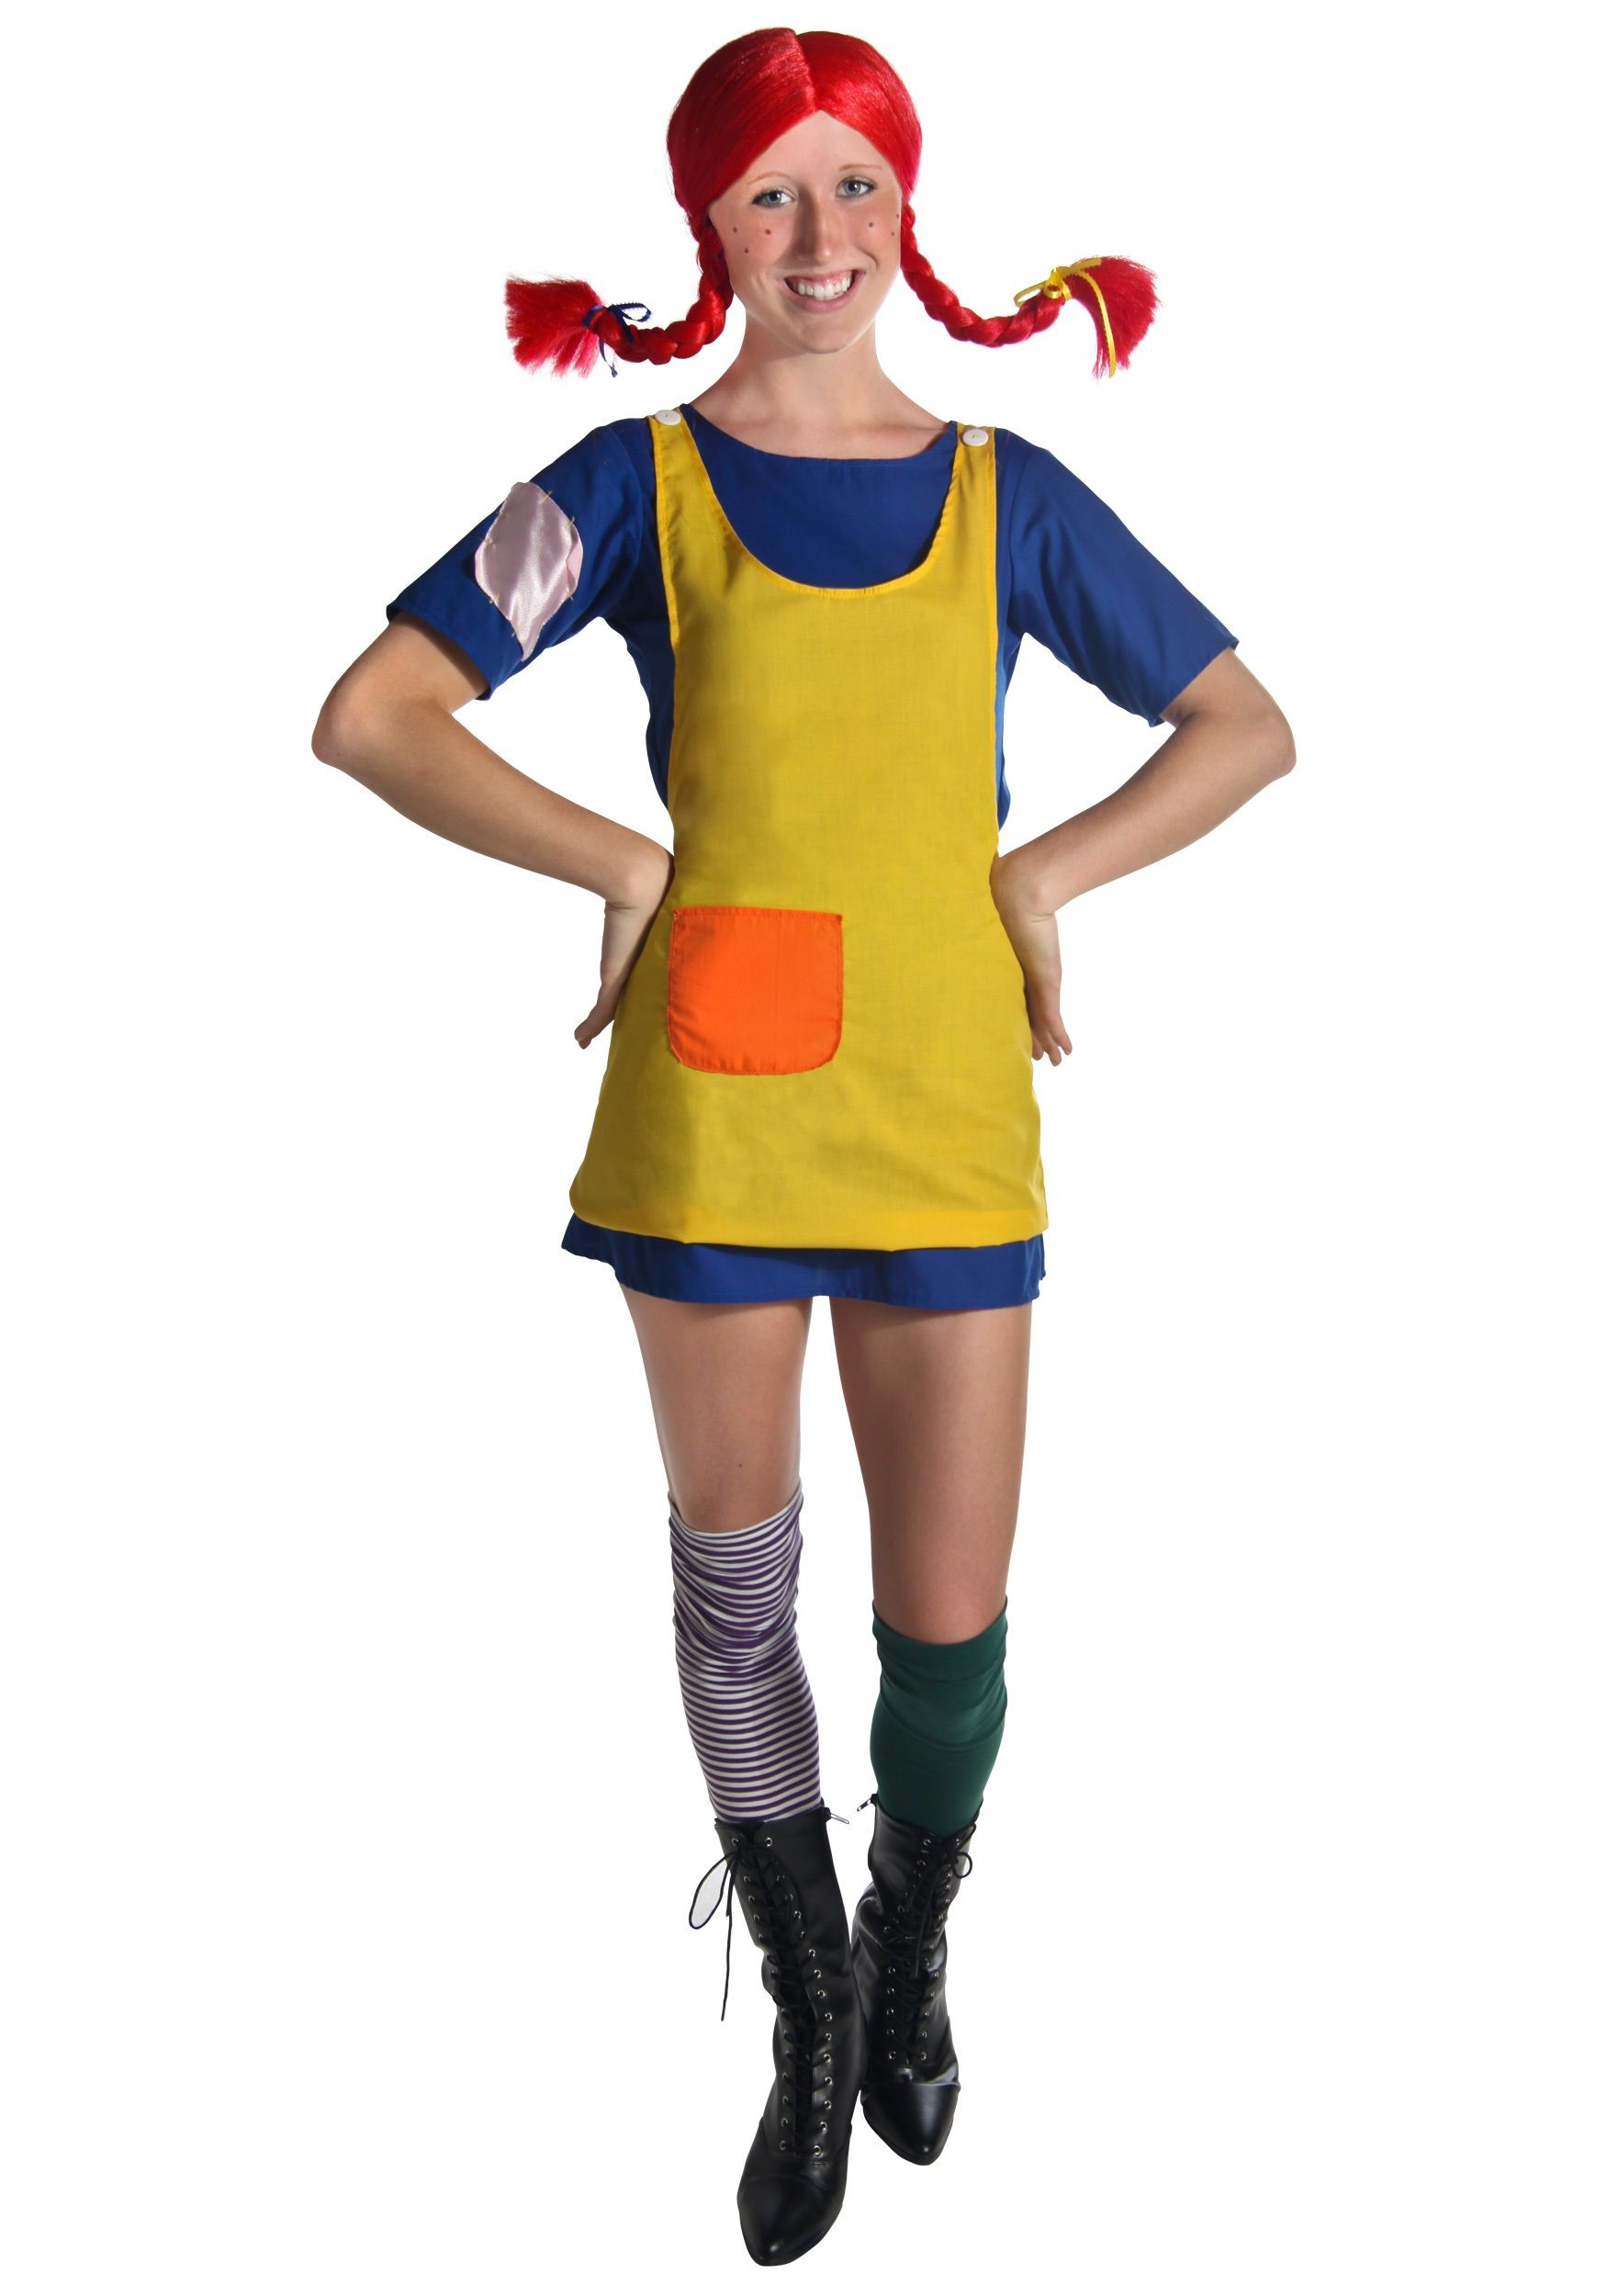 adult pippi costume halloween pinterest costumes book week costume and woman costumes. Black Bedroom Furniture Sets. Home Design Ideas